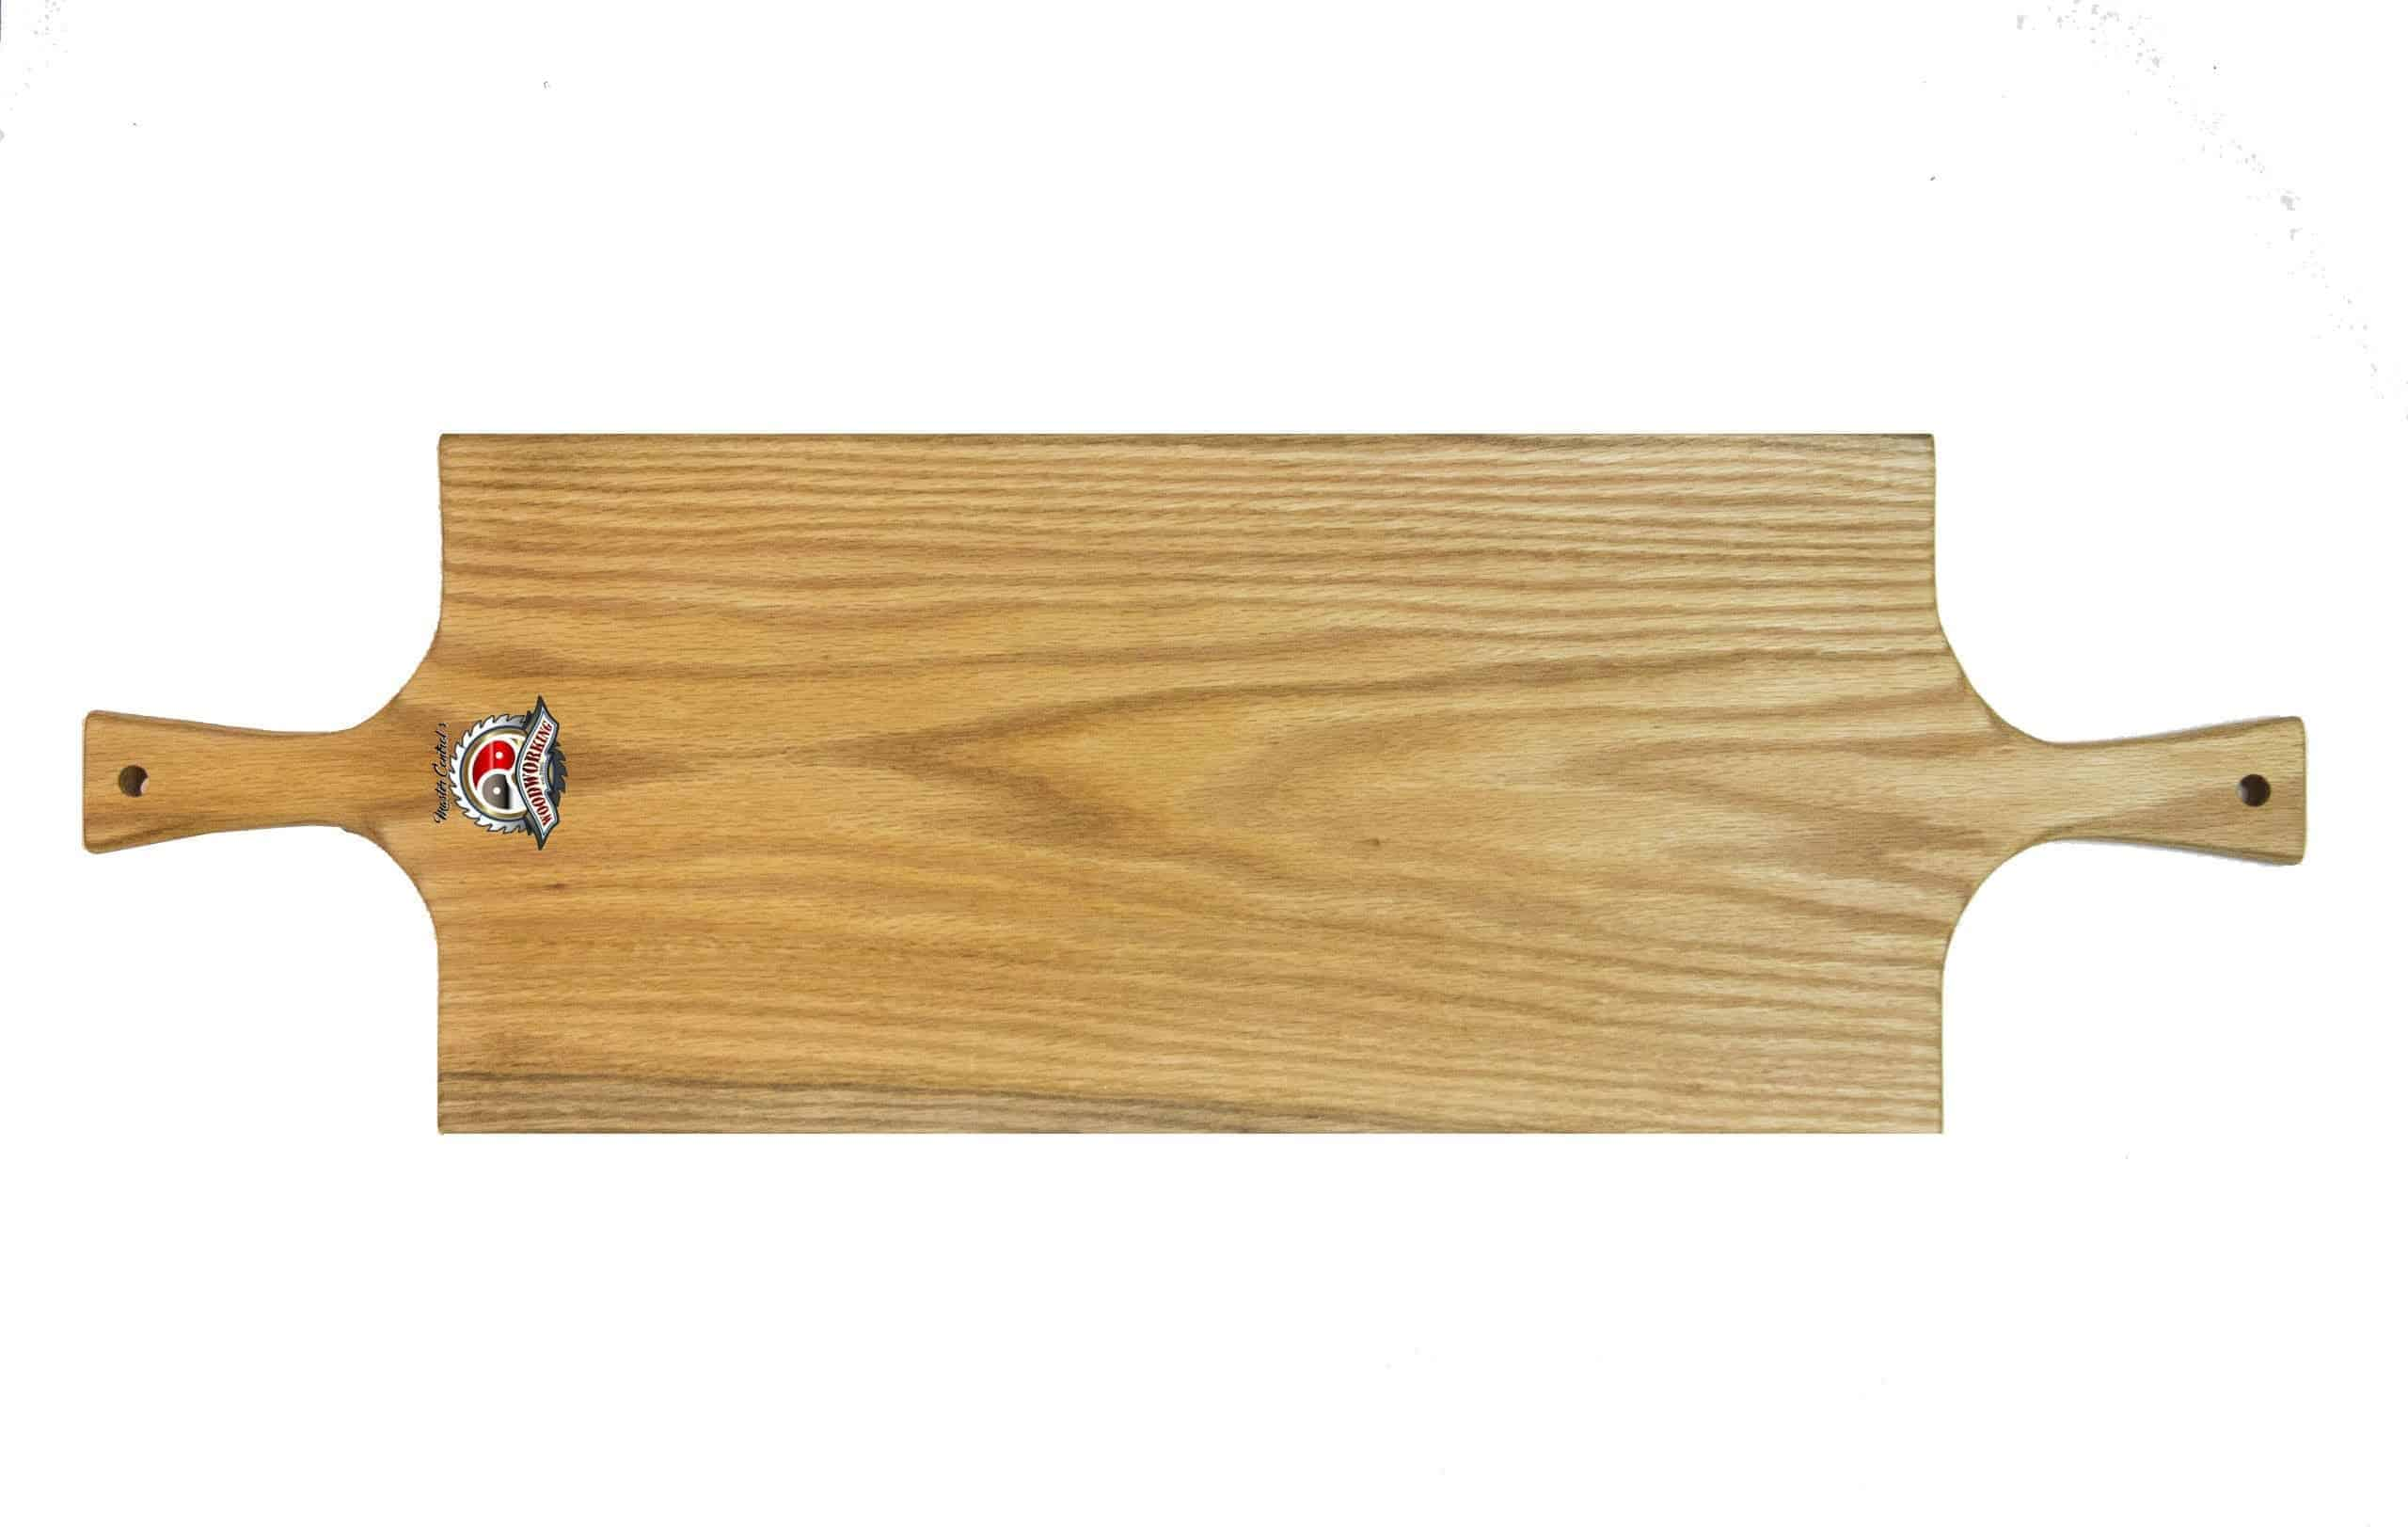 Solid Hardwood Double Handled Serving Platter Paddle / Cutting Board